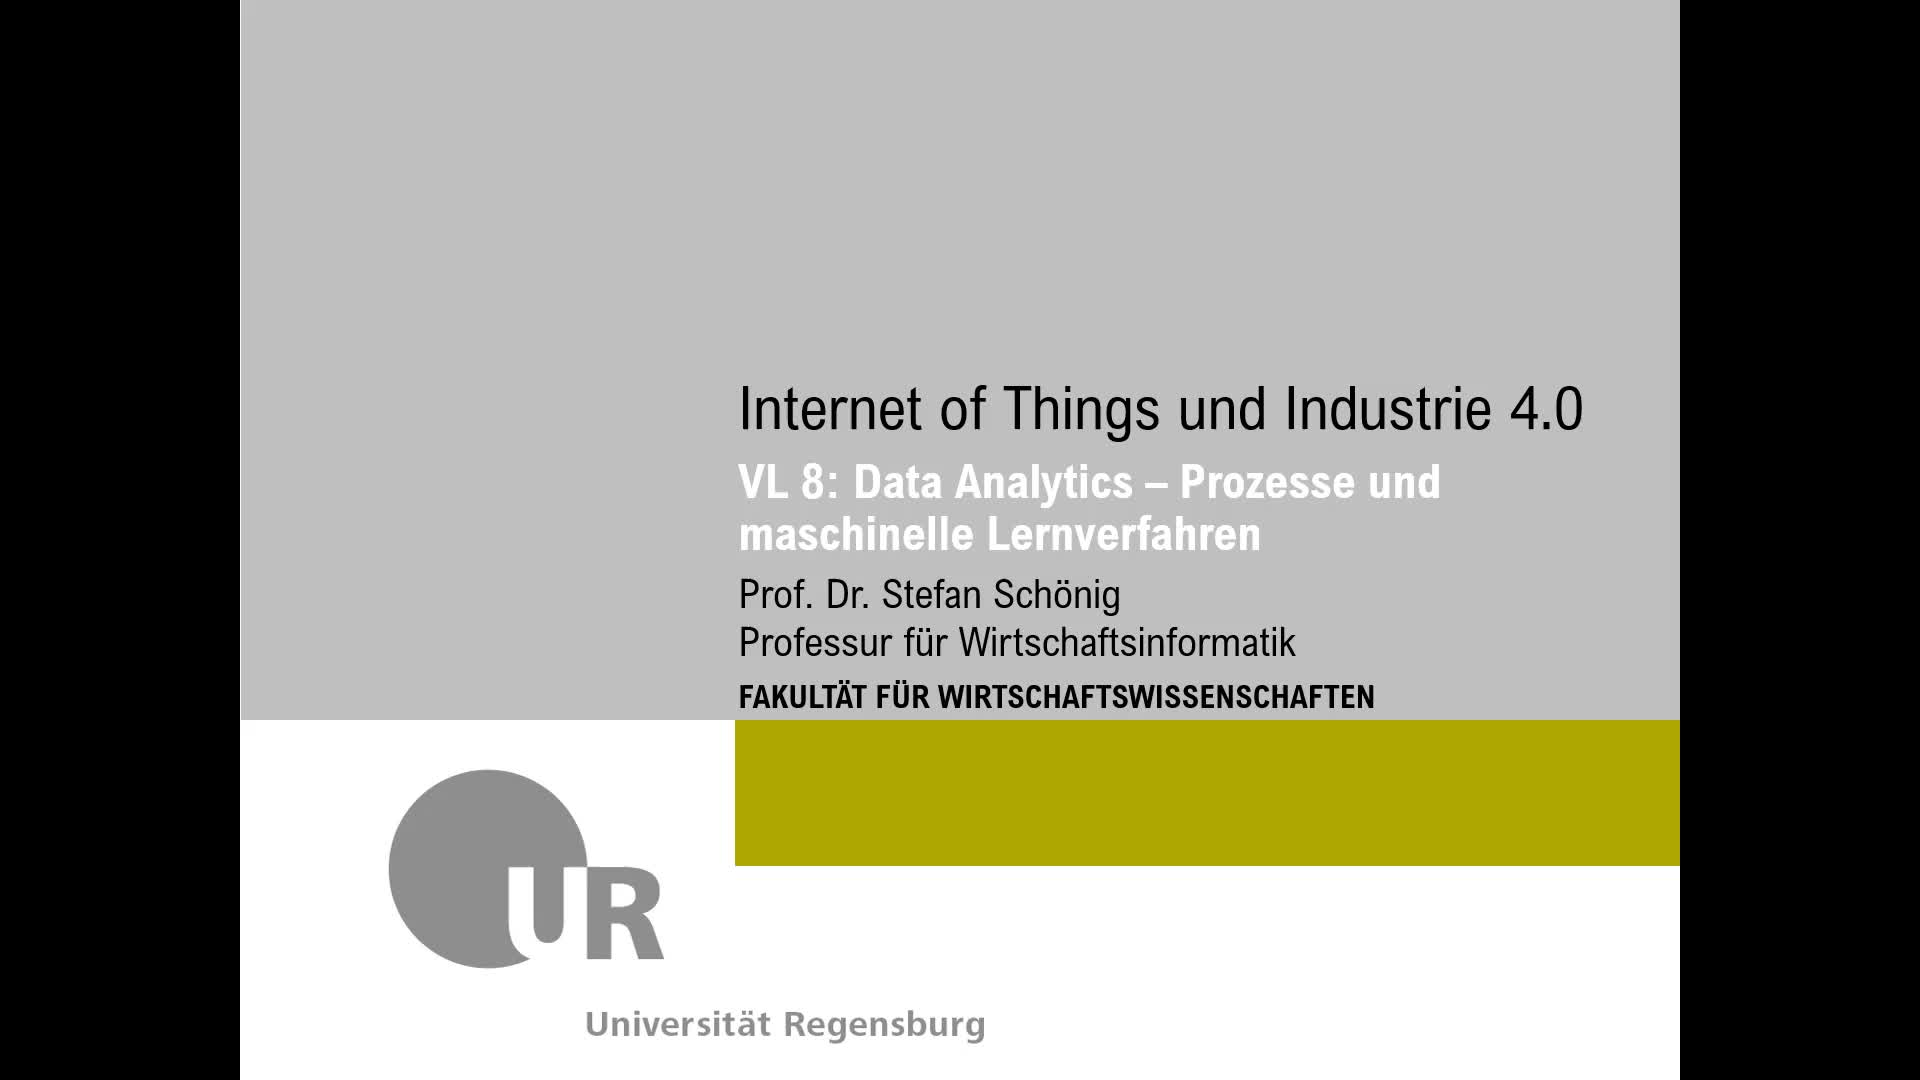 SS 2020 - Internet of Things und Industrie 4.0 - Kapitel 8 (Data Analytics - Prozesse)